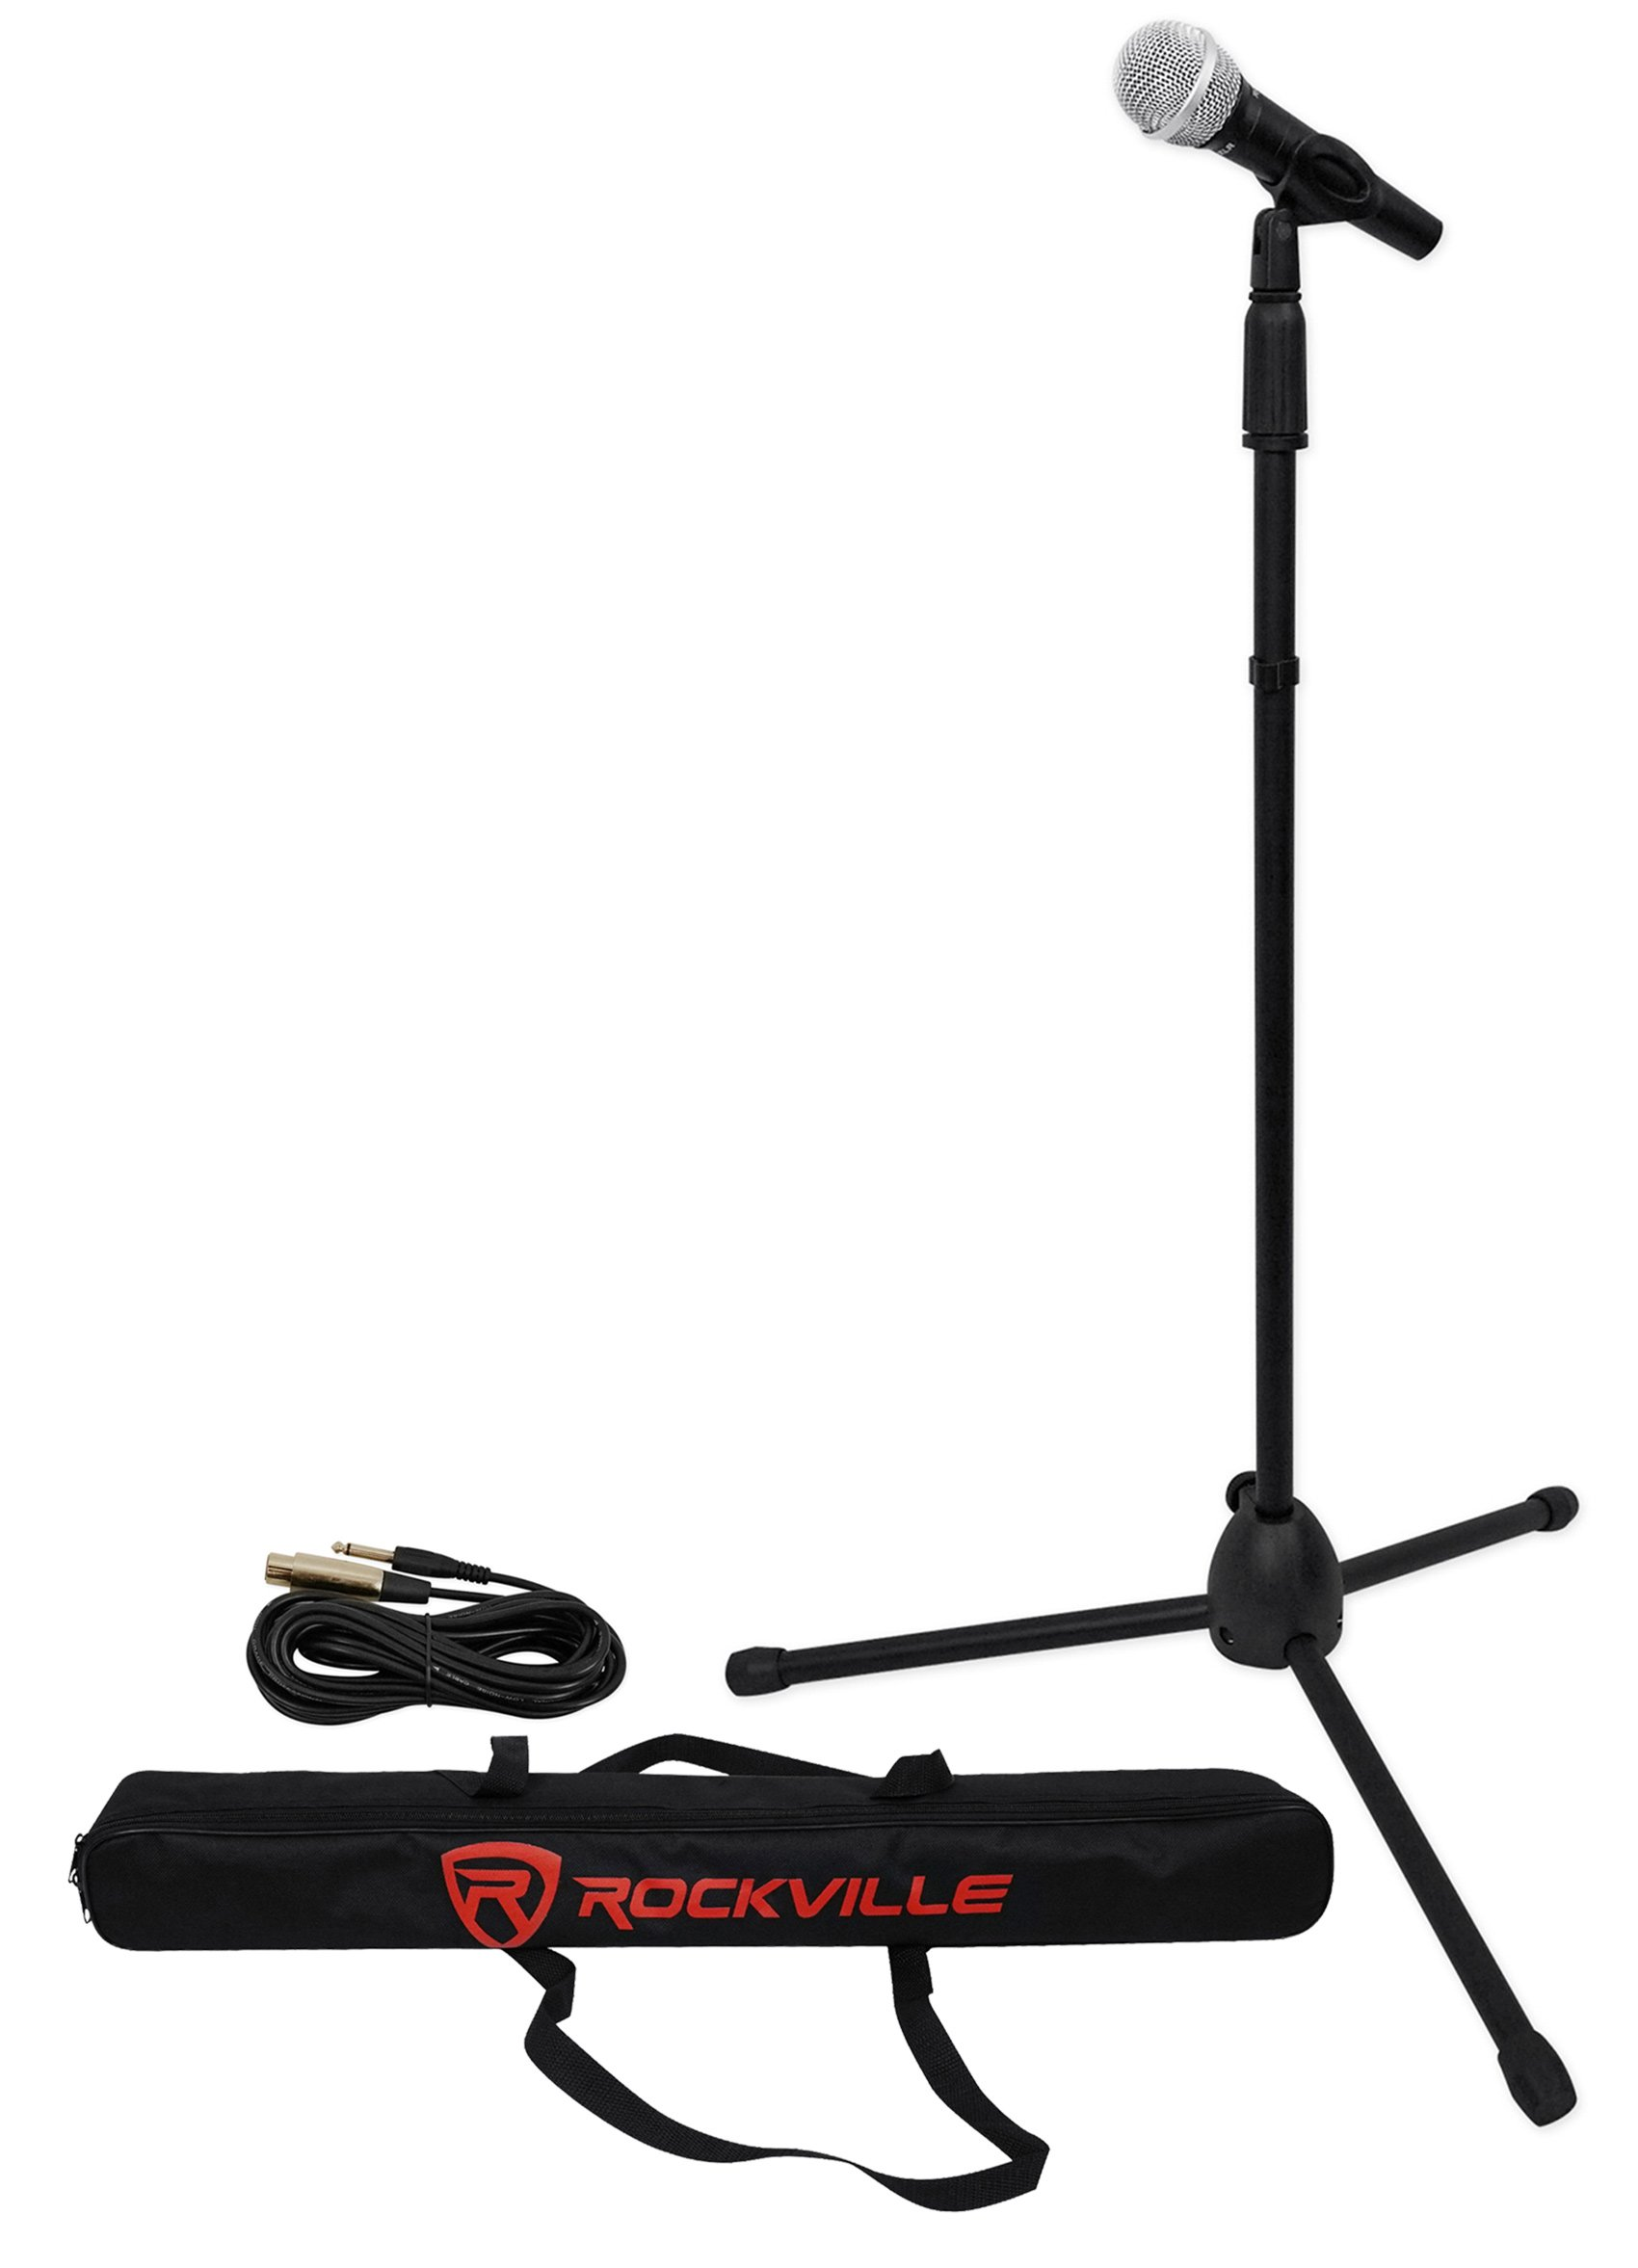 Rockville Pro MIc Kit 1 - High-End Metal Microphone+Mic Stand+Carry Bag+Cable by Rockville